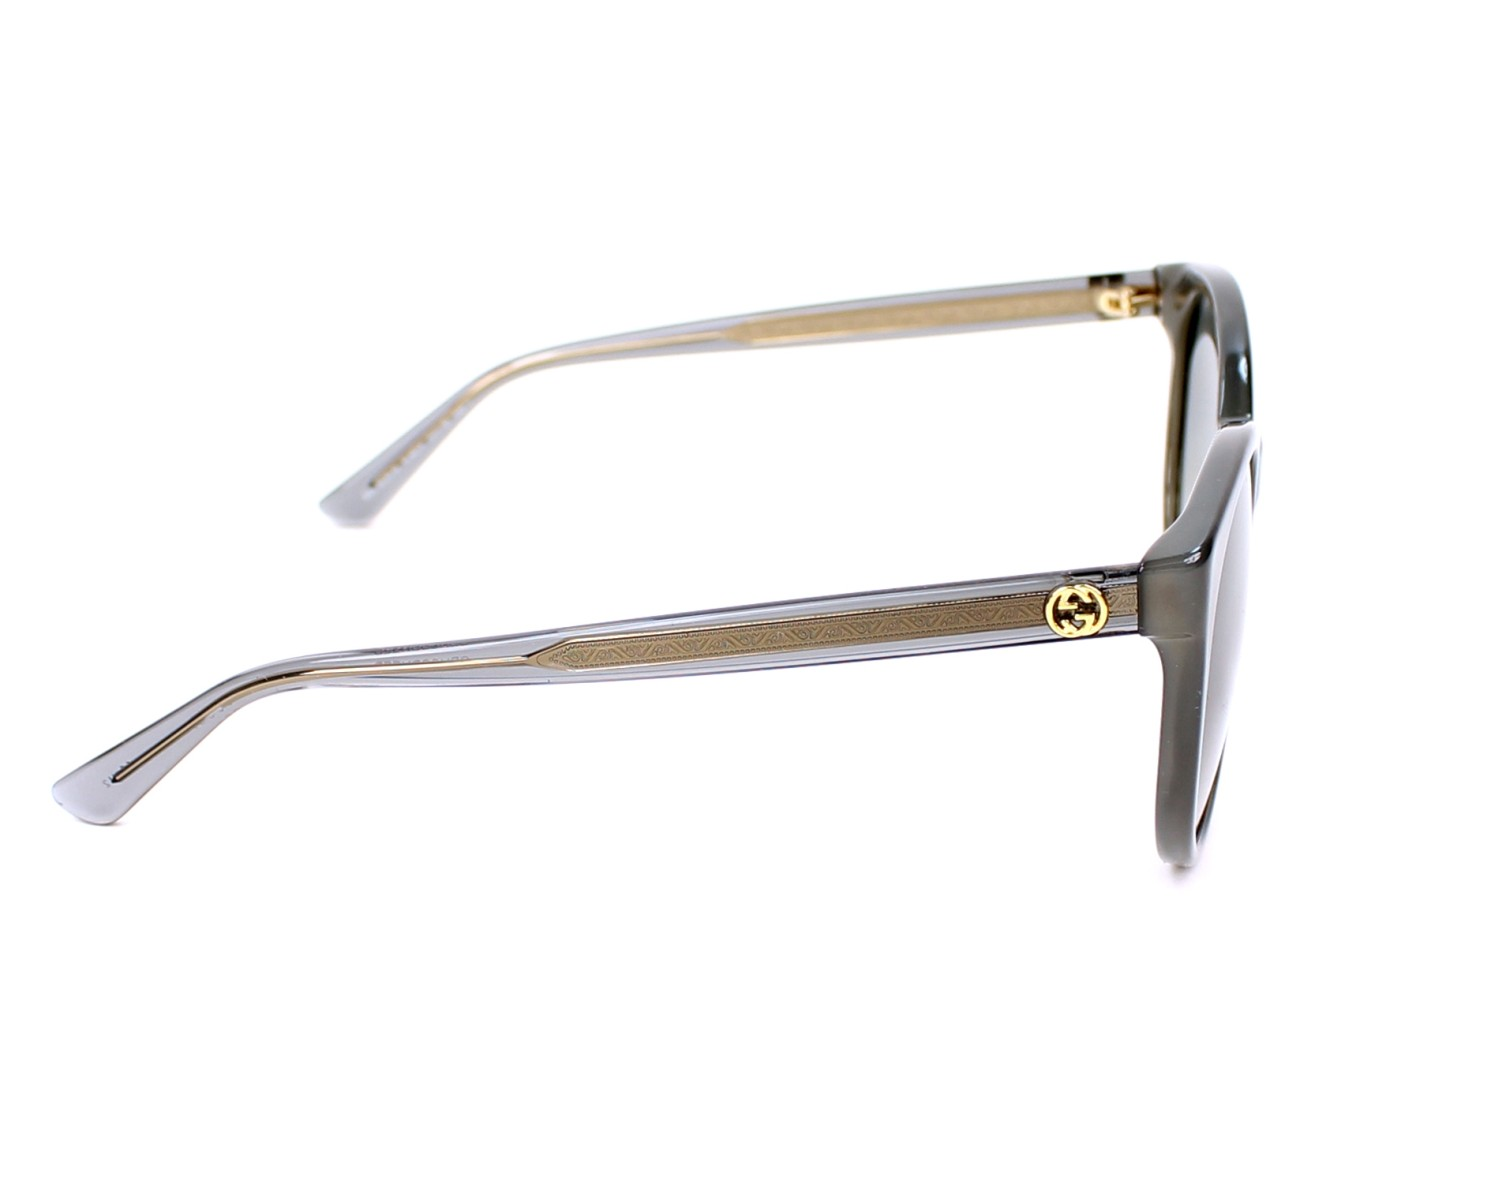 a956c4d16341 Sunglasses Gucci GG-3820-S R4I DX 54-19 Grey side view